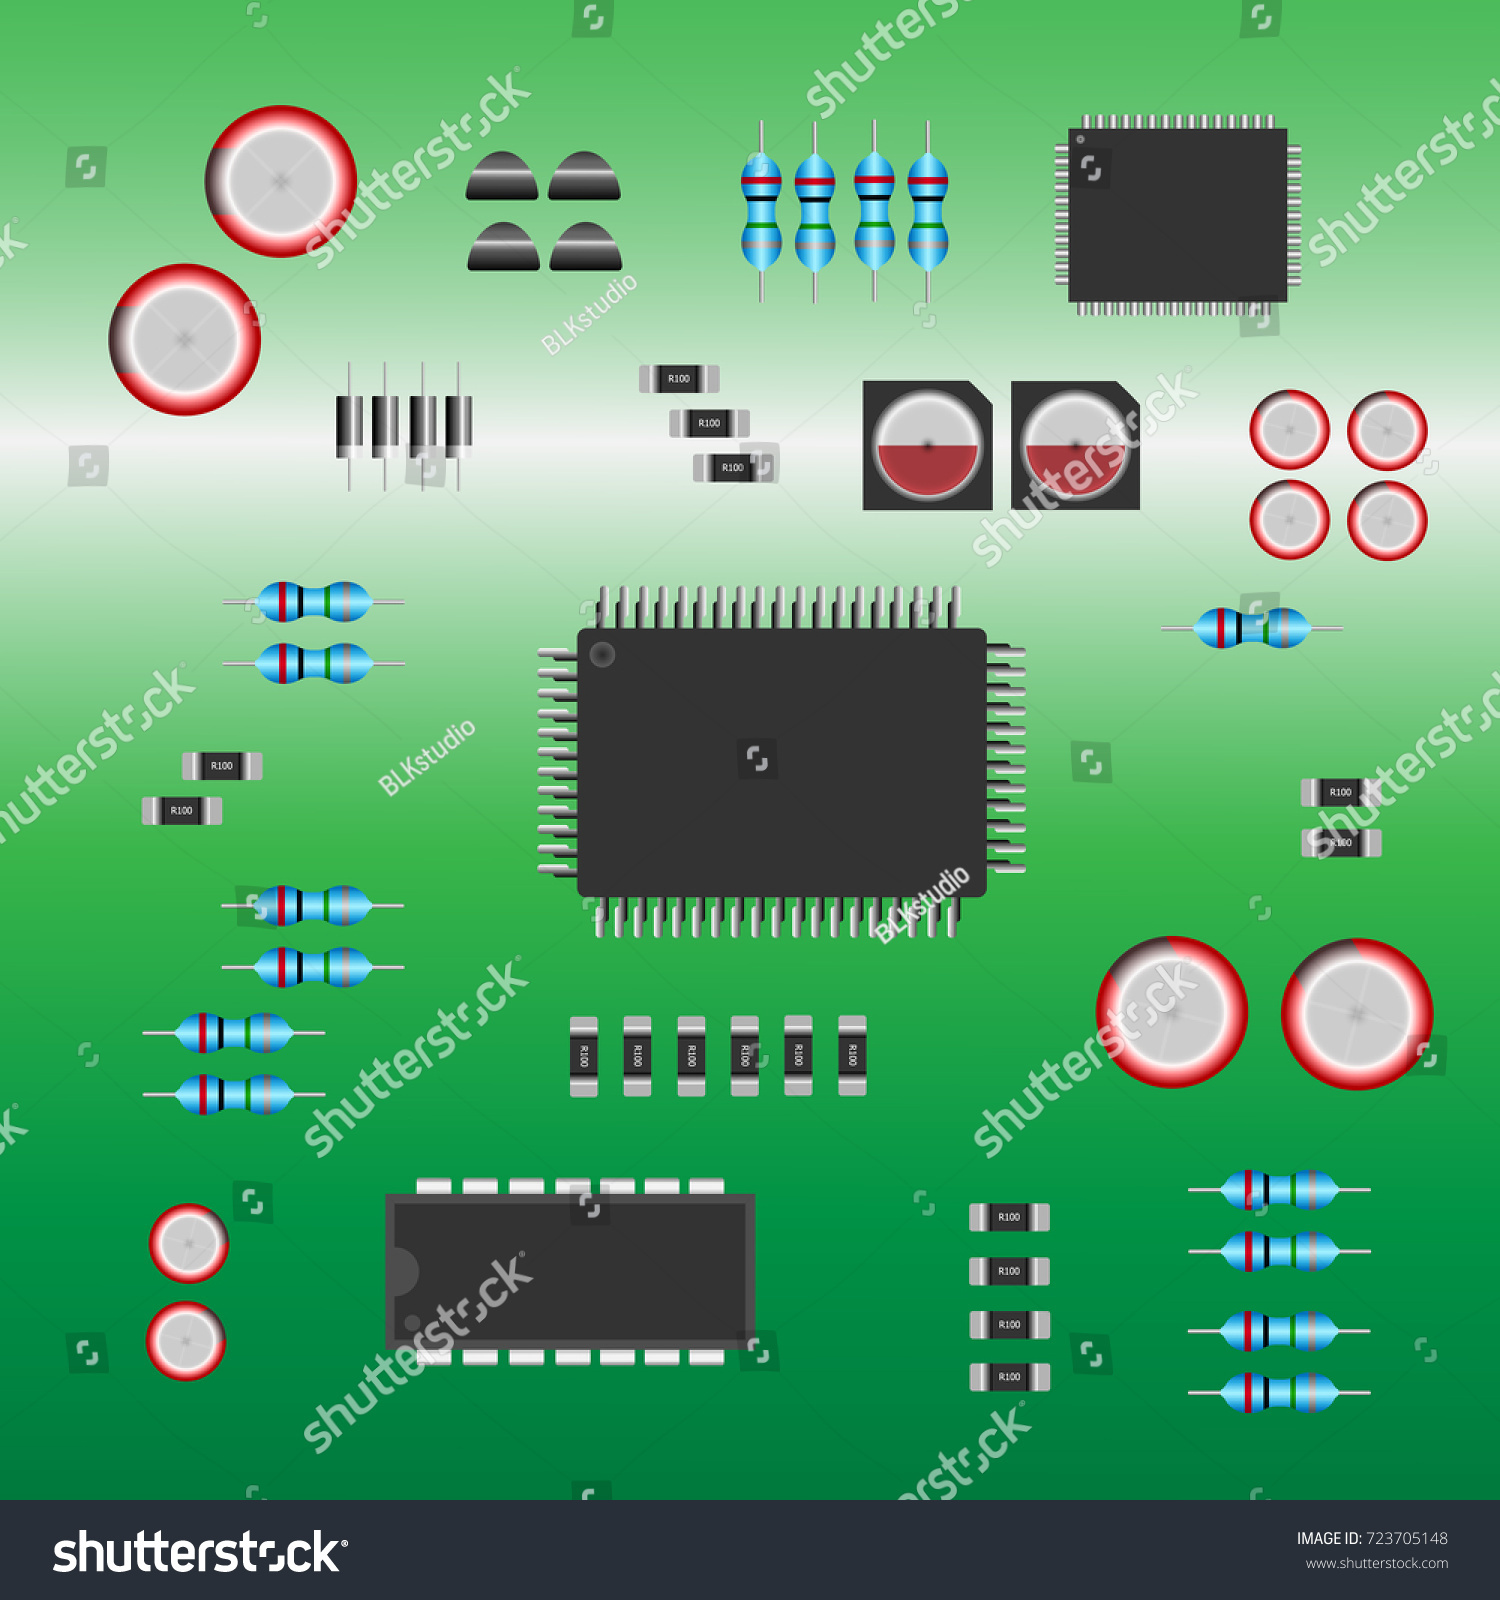 Group Electronic Parts Installed On Green Stock Vector Royalty Free Circuit Integrated Of A Board Illustration Design